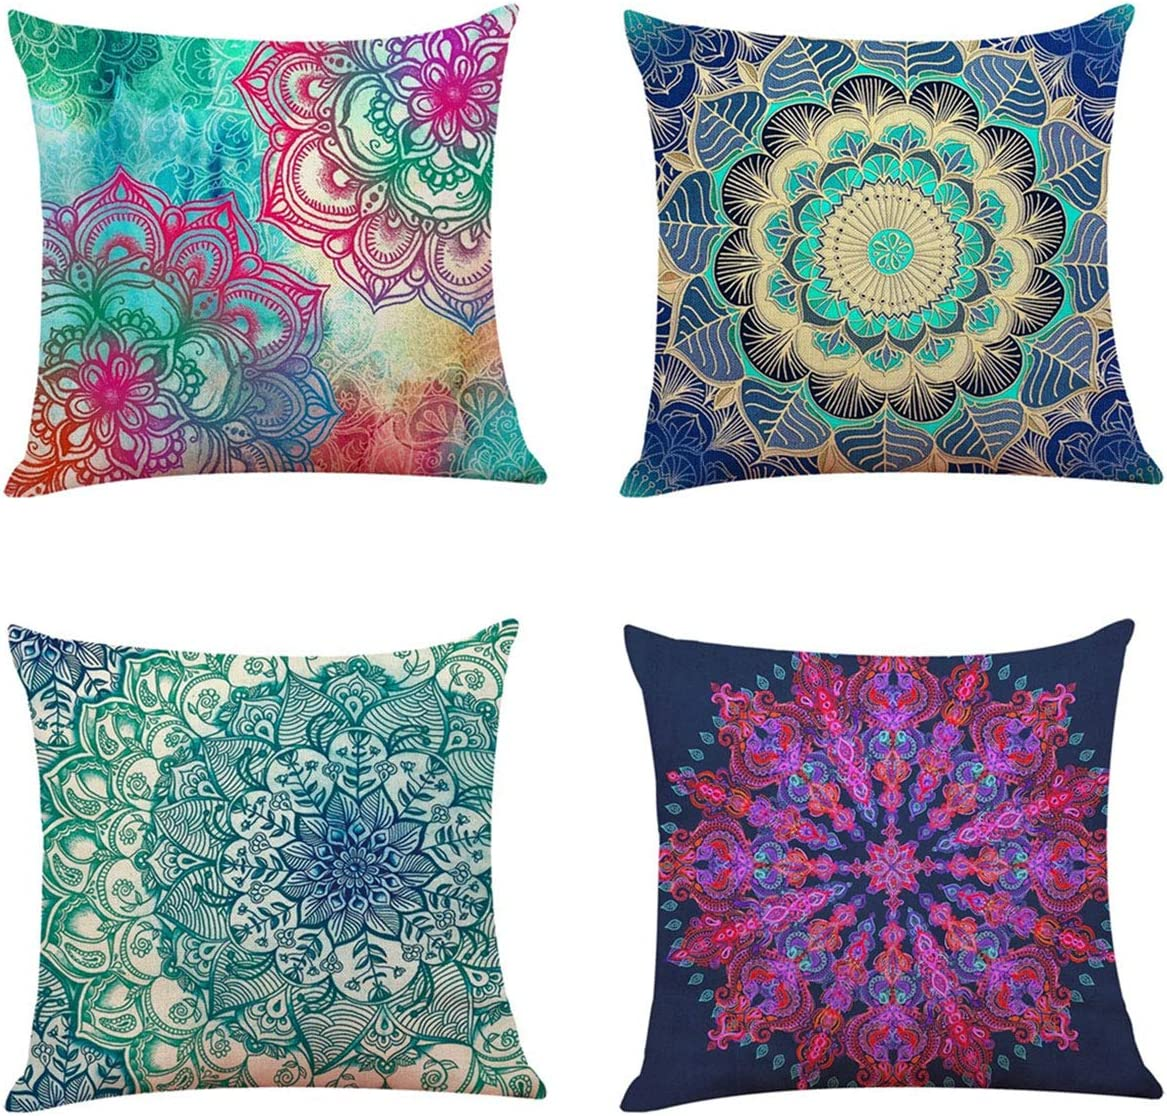 Longyier Pillow Covers 18x18 Inch, Decorative Throw Pillow Cover for Couch Sofa Bed,Linen Fabric Retro Medallion Mandala Bohemian Boho Throw Pillows (Set of 4)